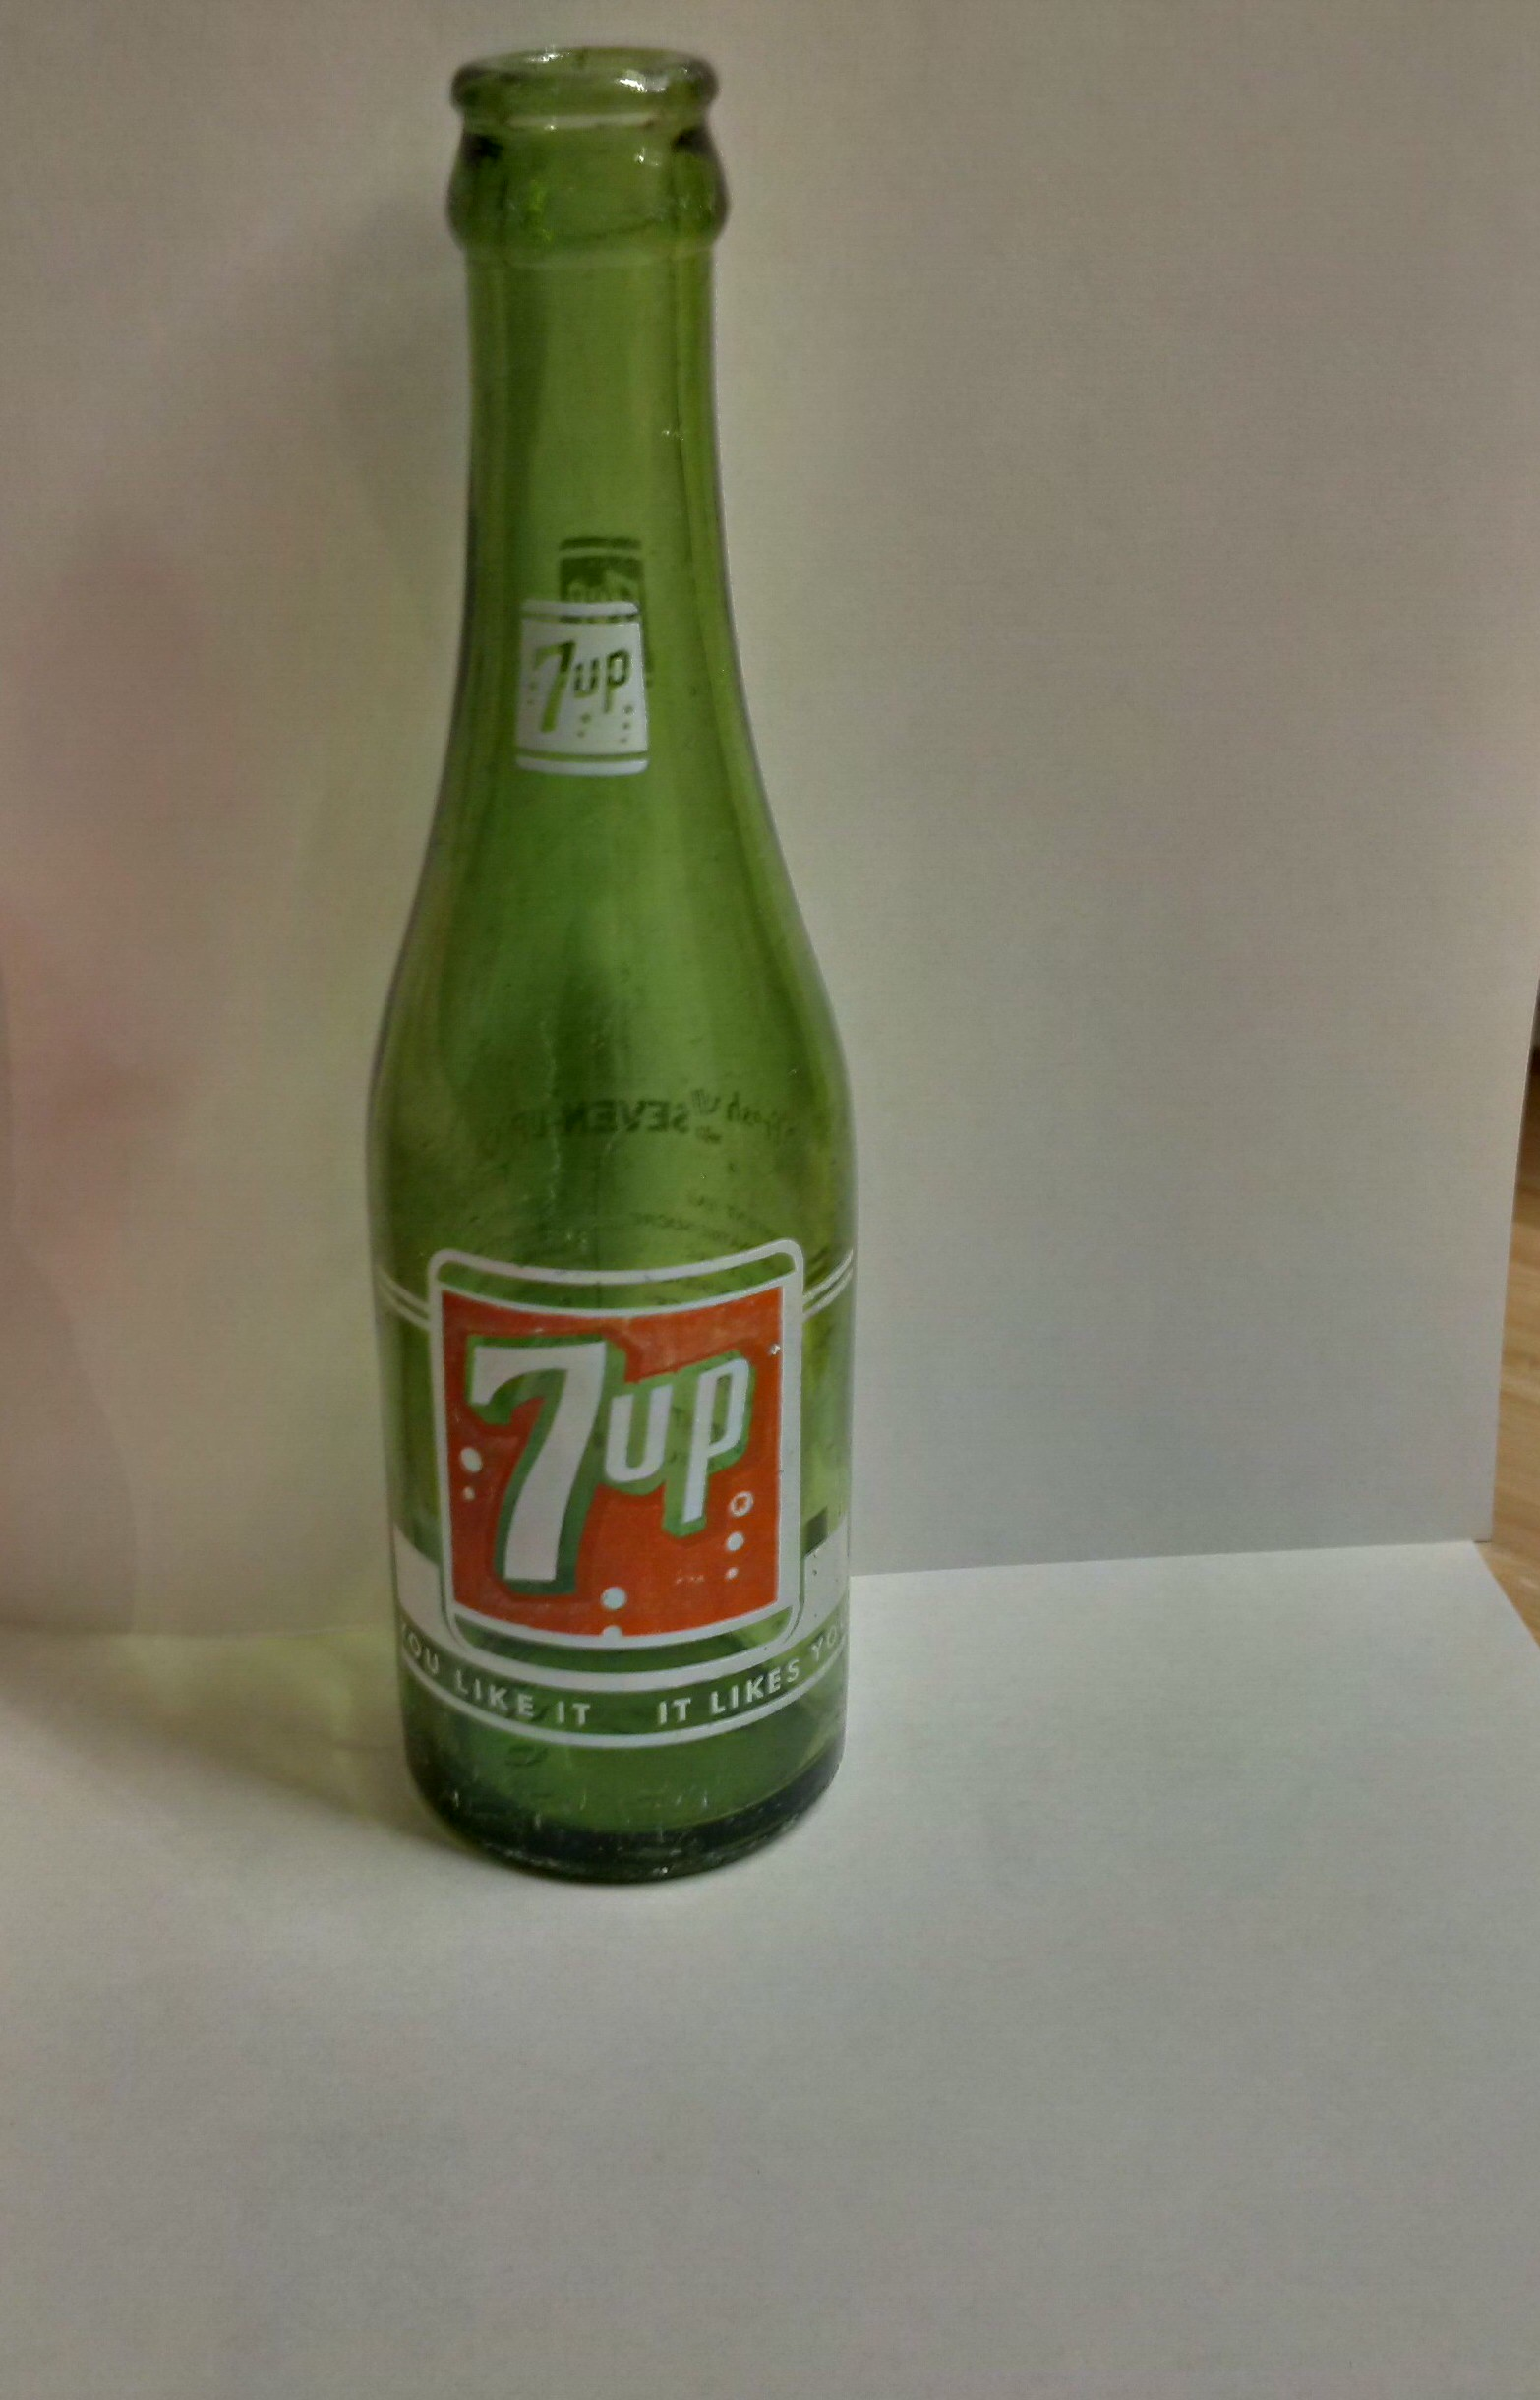 Vintage 7up Bottles And Can Identification Help